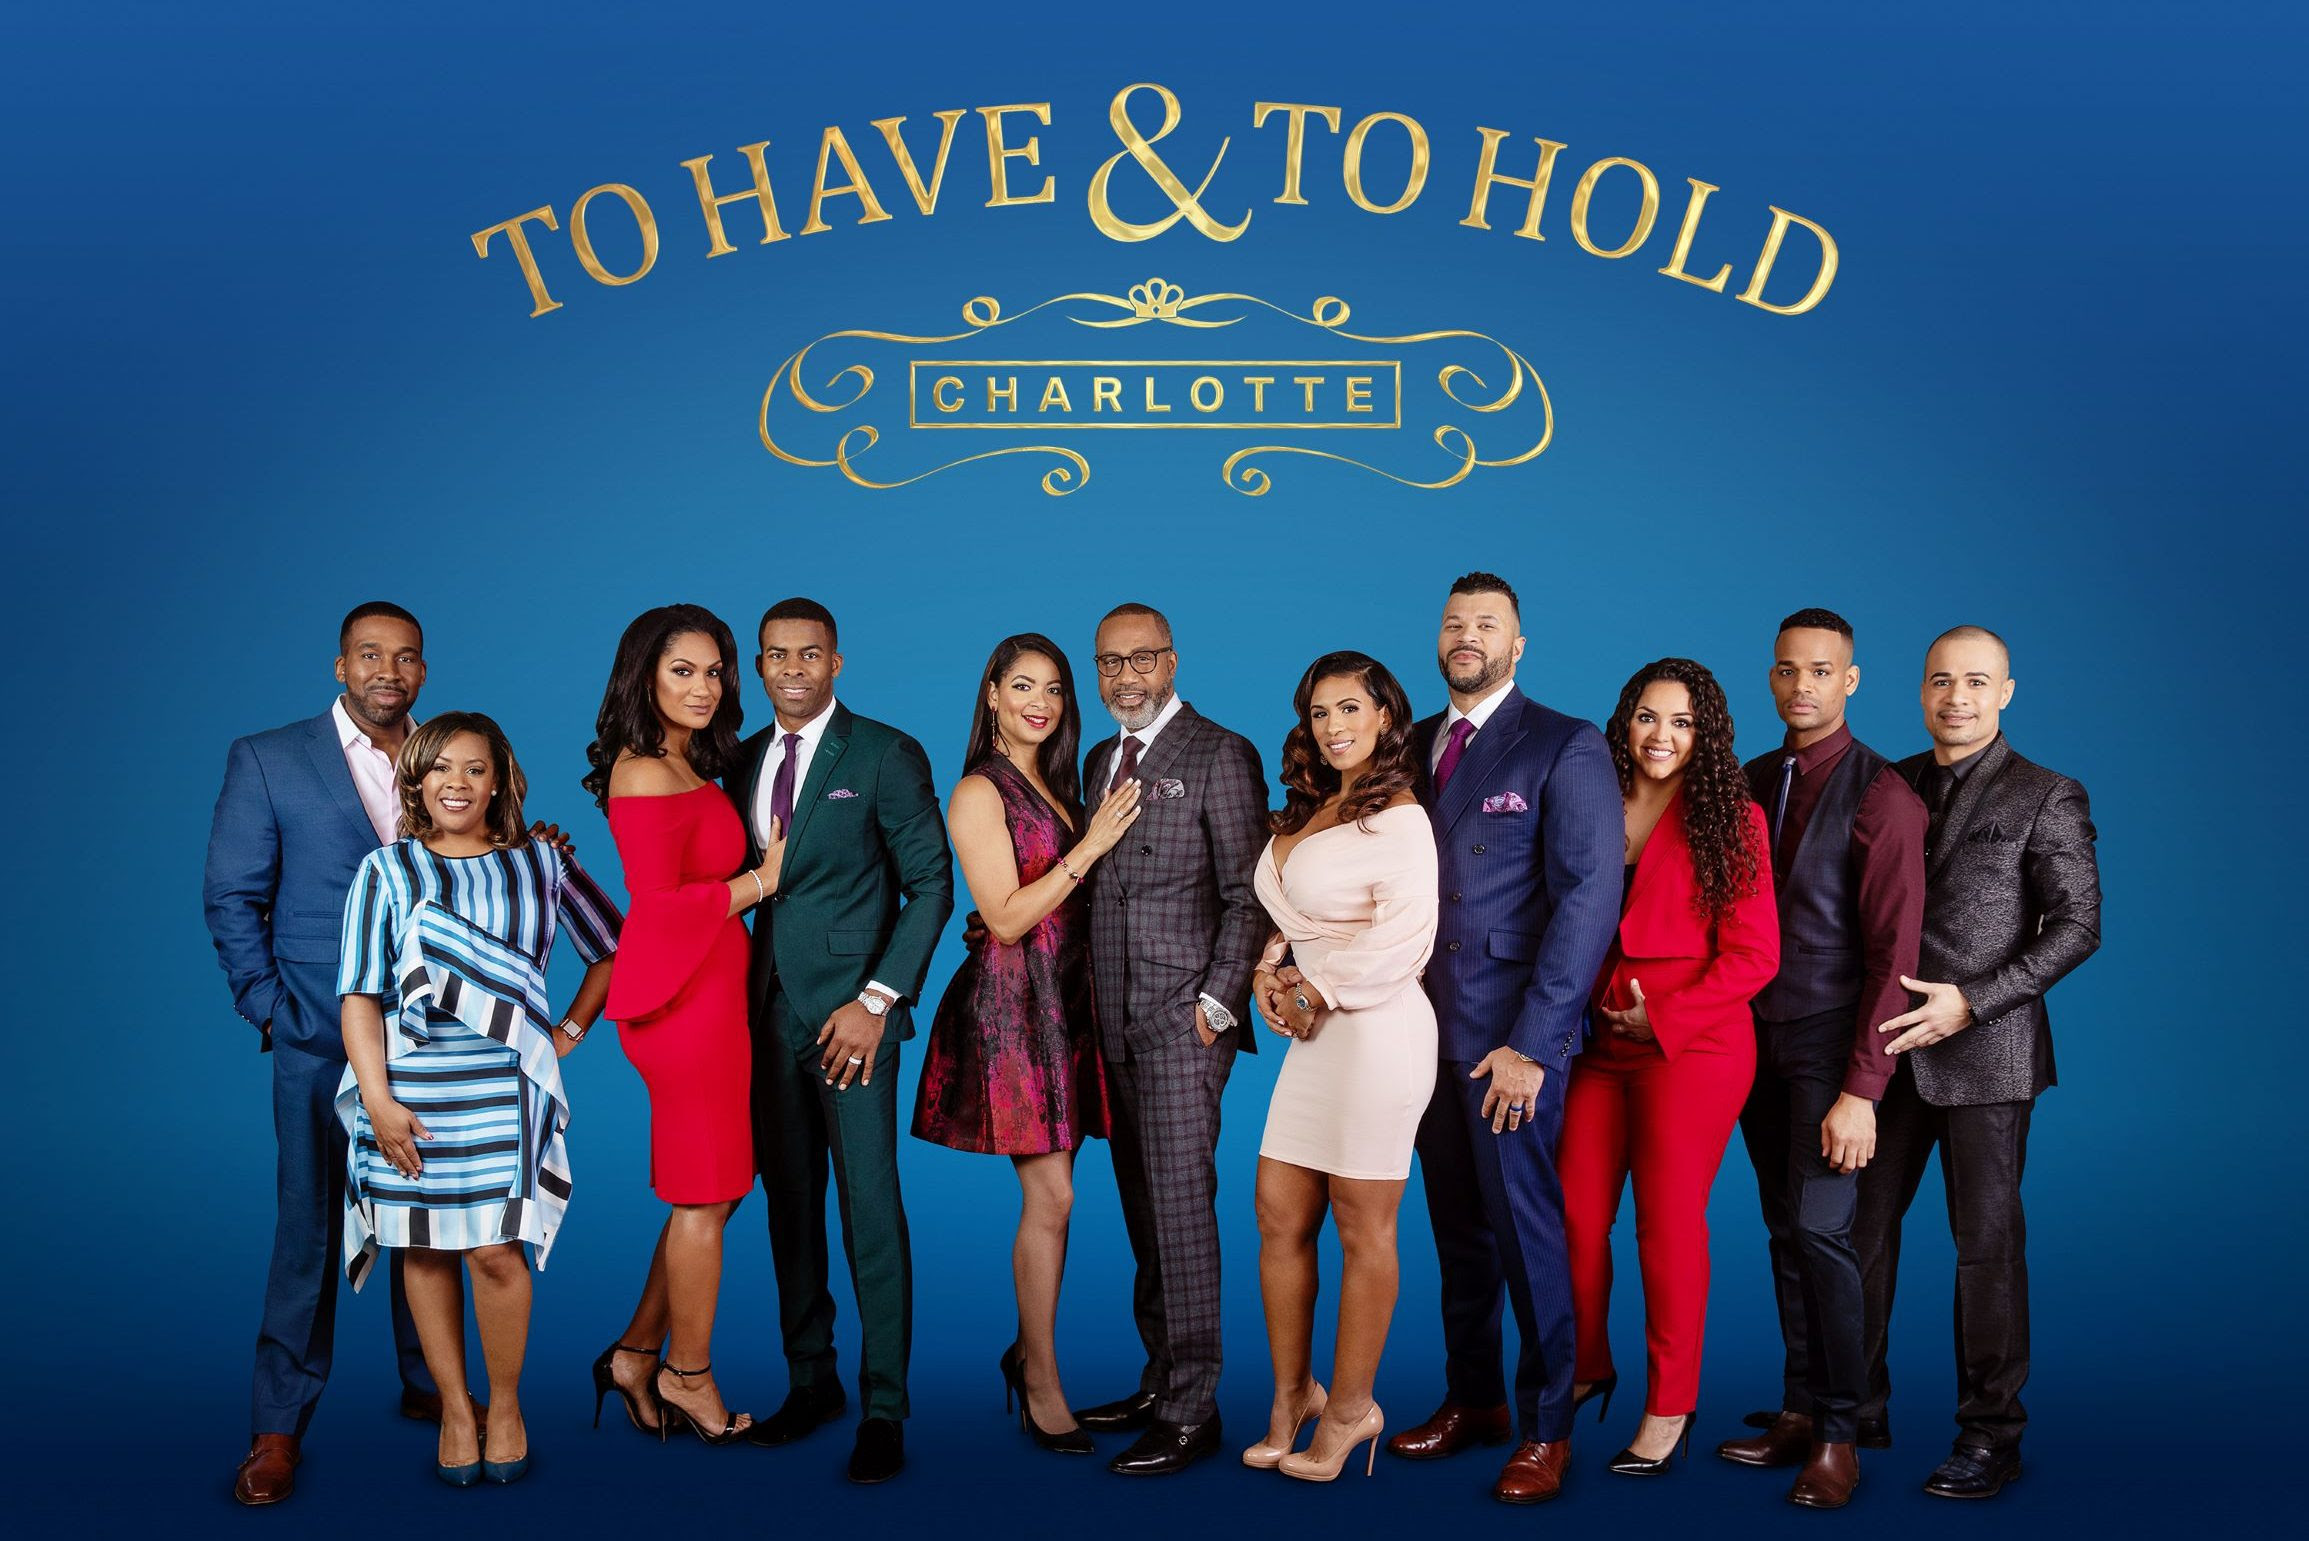 Charlotte Based Reality Tv Series Premieres On Own Network Q